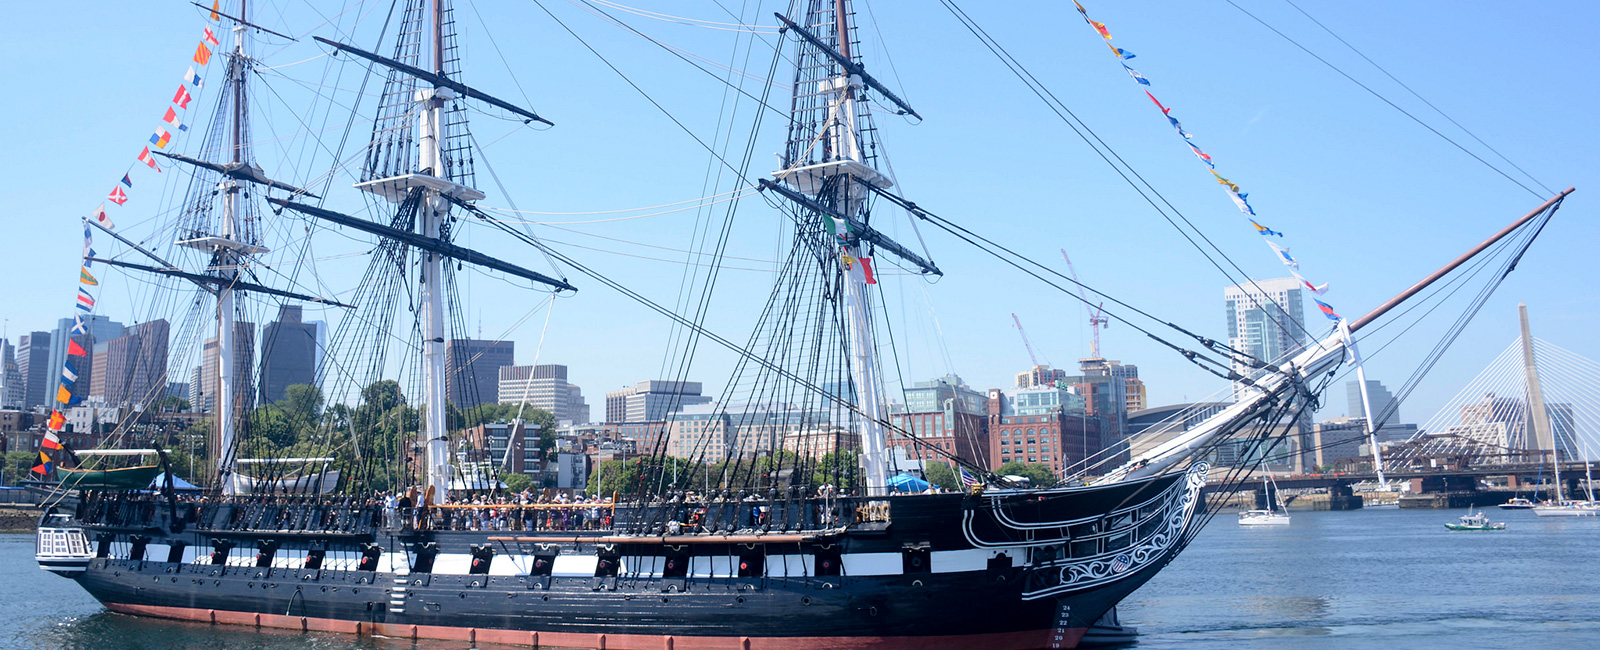 USS Constitution is tugged through Boston Harbor to Fort Independence on Castle Island during 'Old Ironsides' underway commemorating Independence Day.